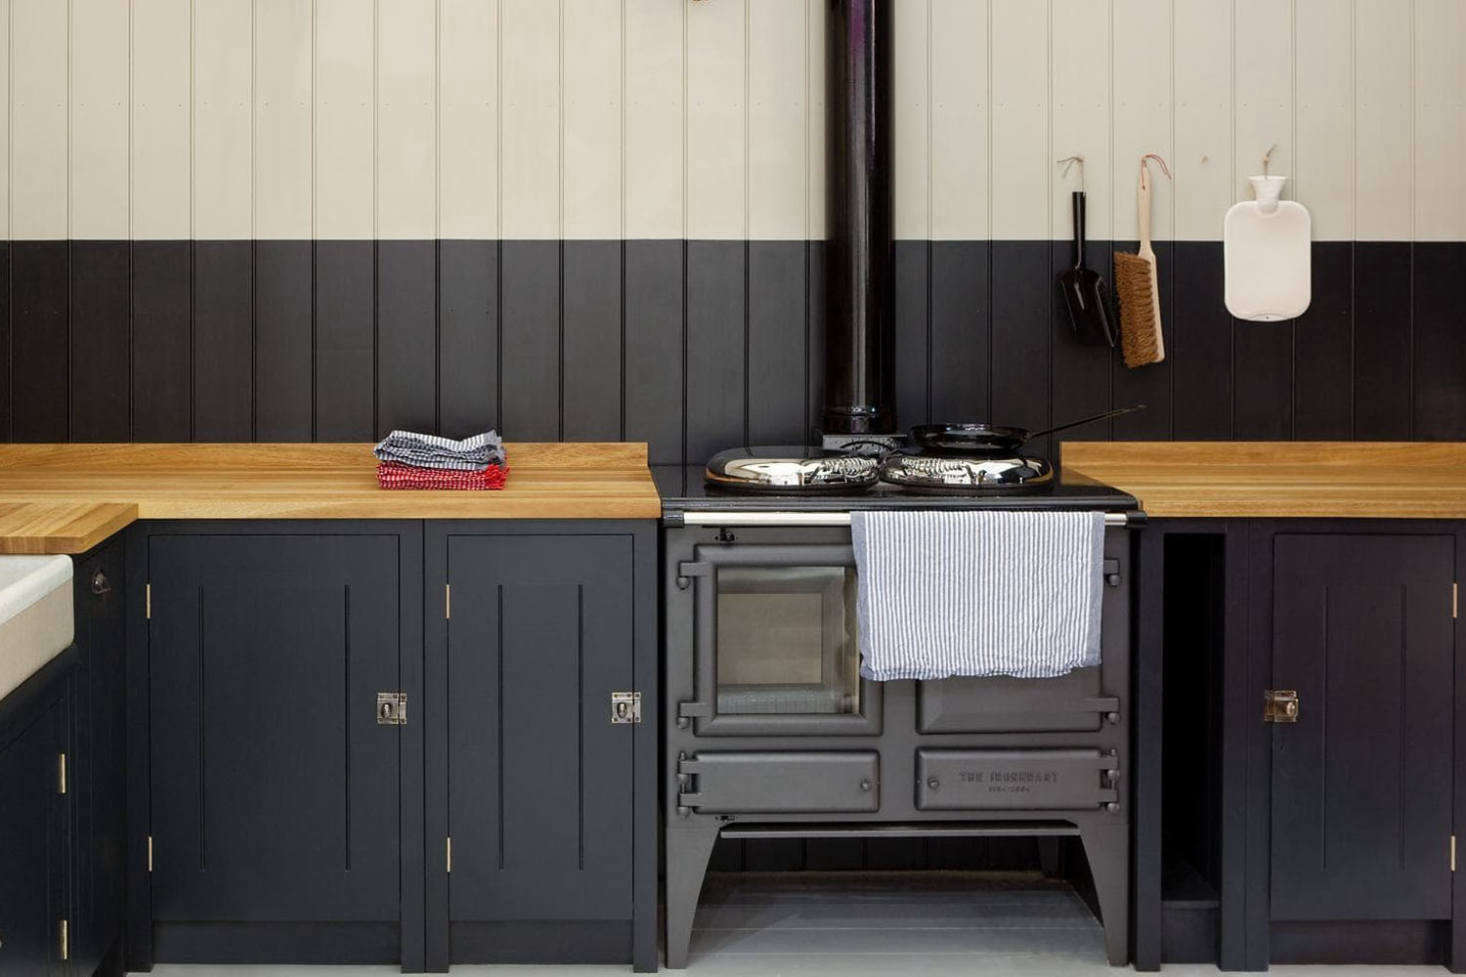 British Standard Cabinet Latches In The British Standard Ideal Kitchen You Can Buy The Latches